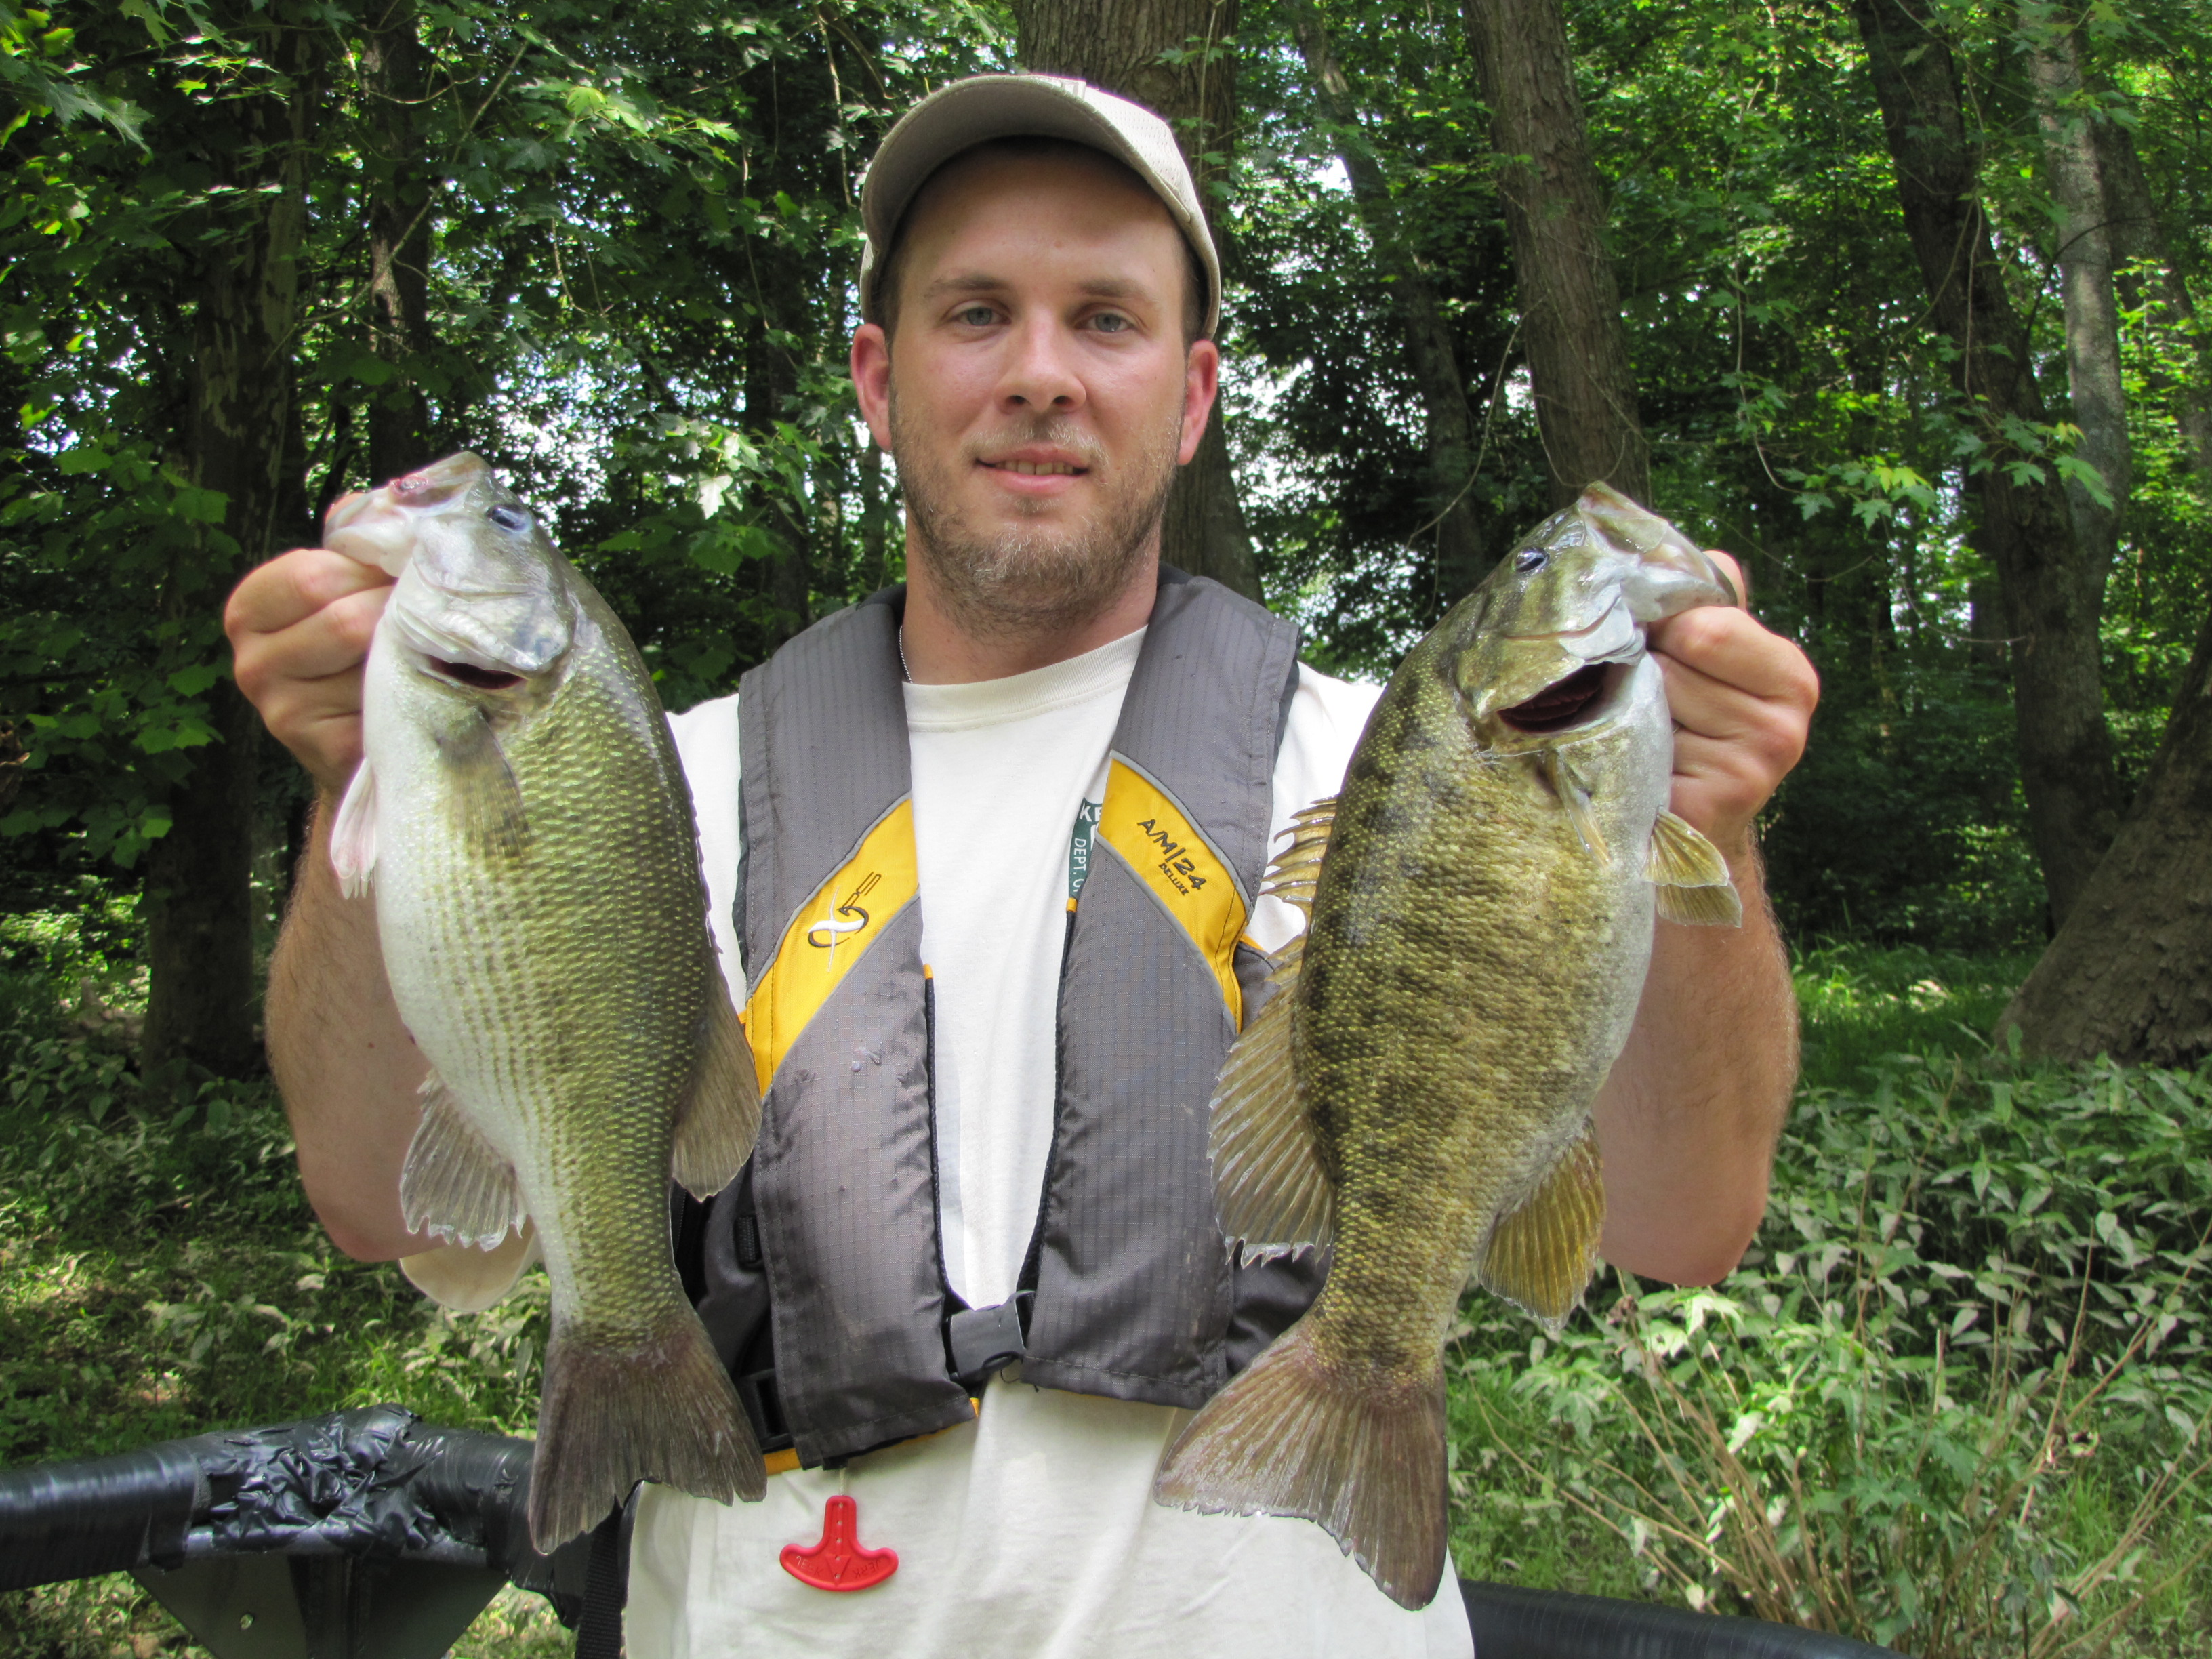 David Baker holds up a nice Kentucky spotted bass (left) and smallmouth bass (right) collected during spring sampling near Munfordville, KY.